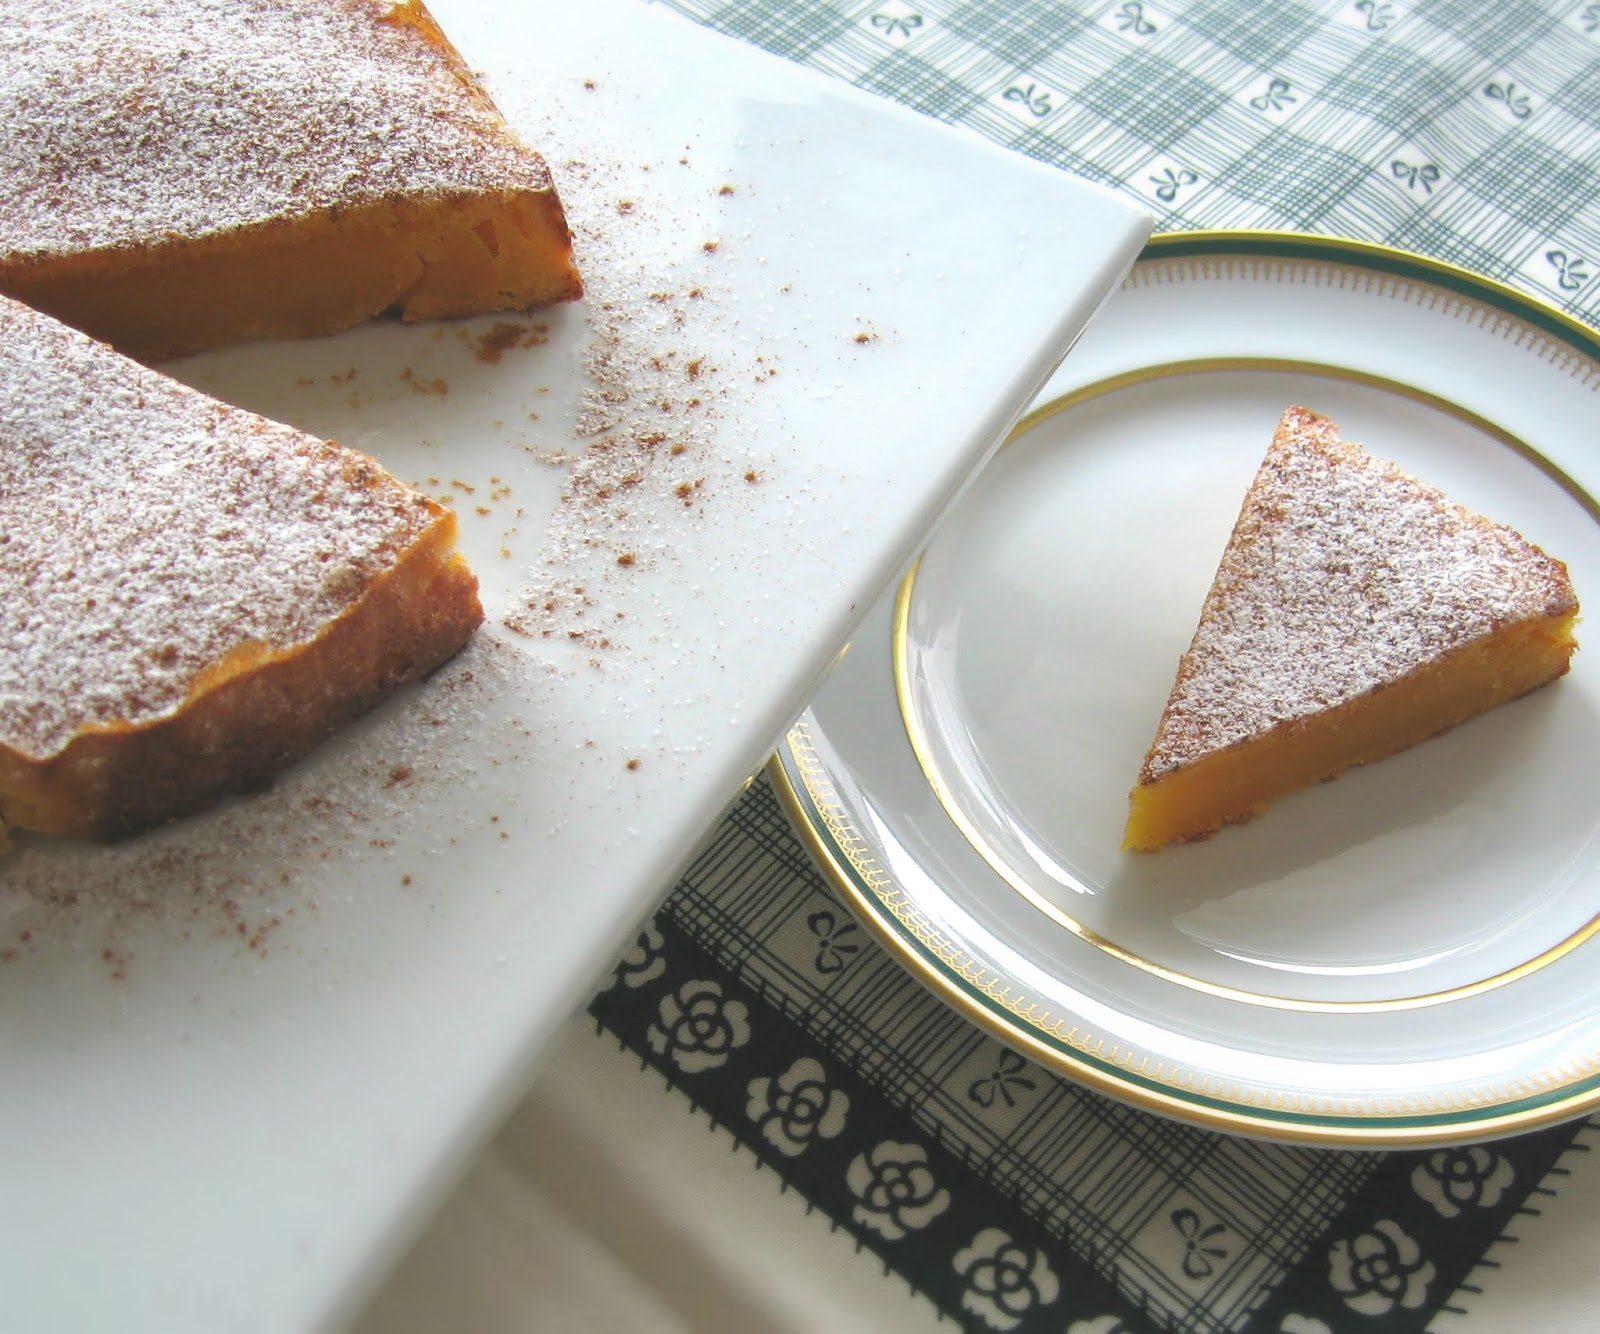 Cake with a slice presented on a small plate